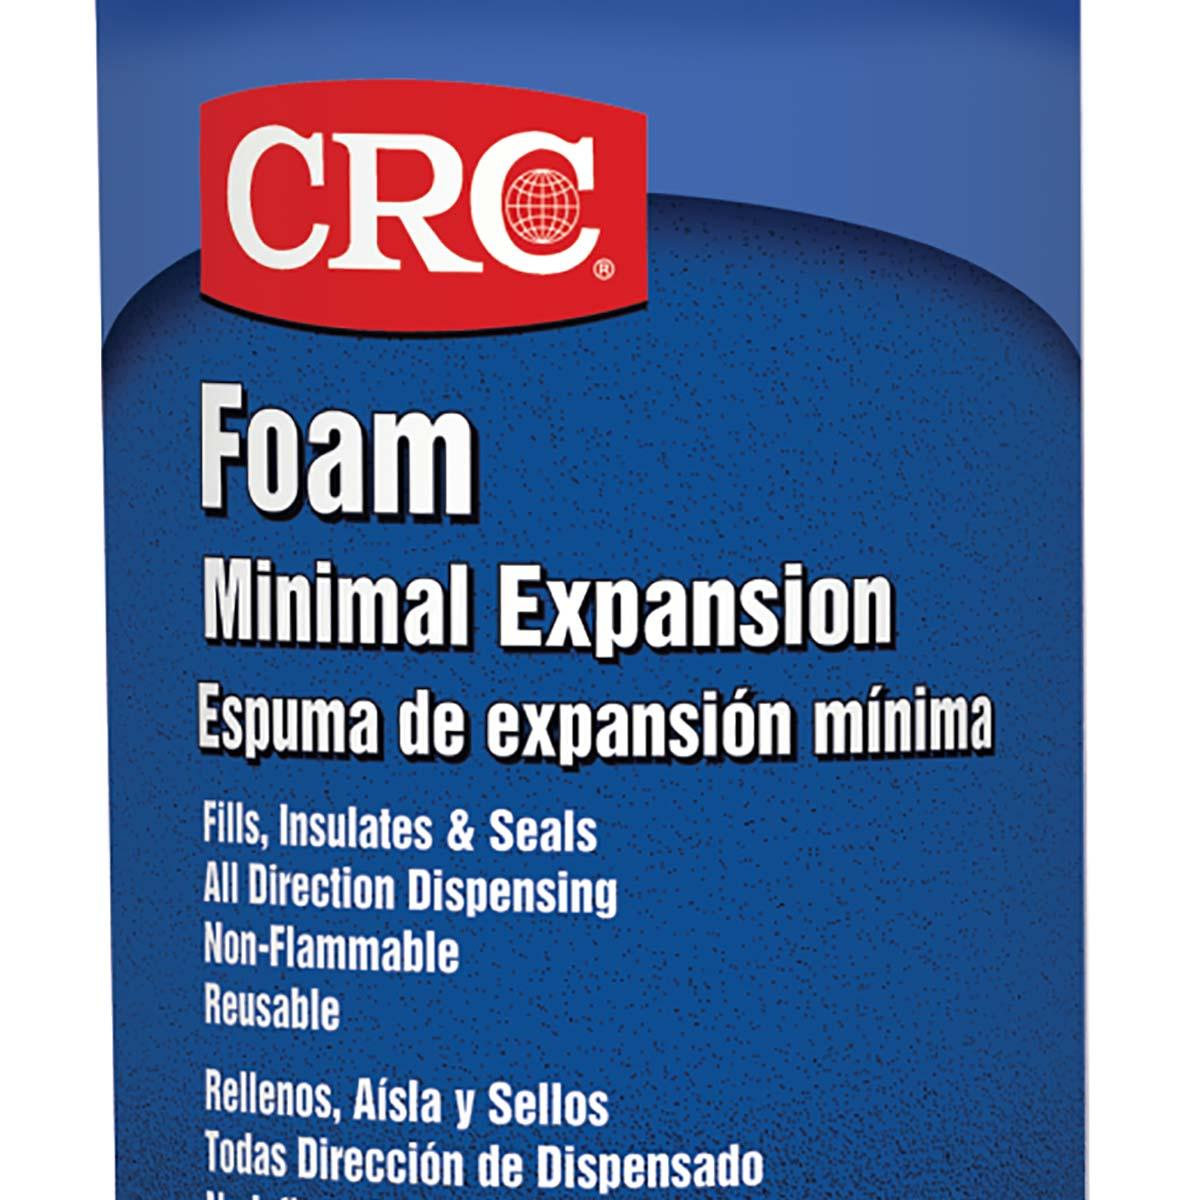 Minimal Expansion Foam, 12 Wt Oz